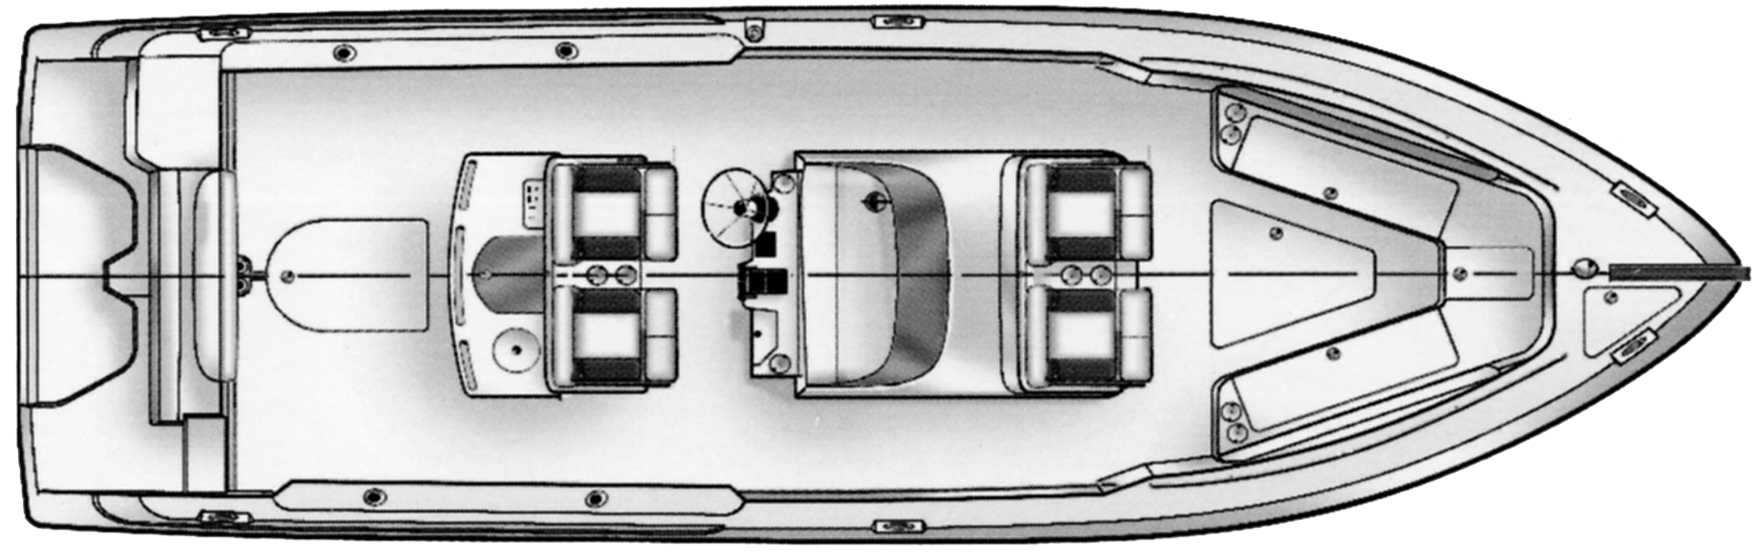 290-295 Center Console Floor Plan 1